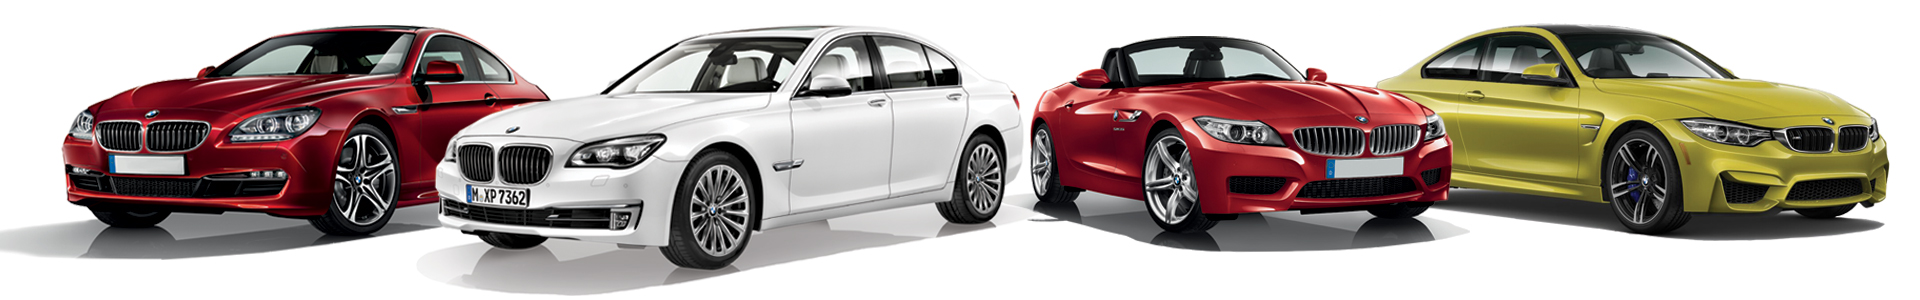 Bmw lease offers get bmw lease specials in miami South motors bmw used cars